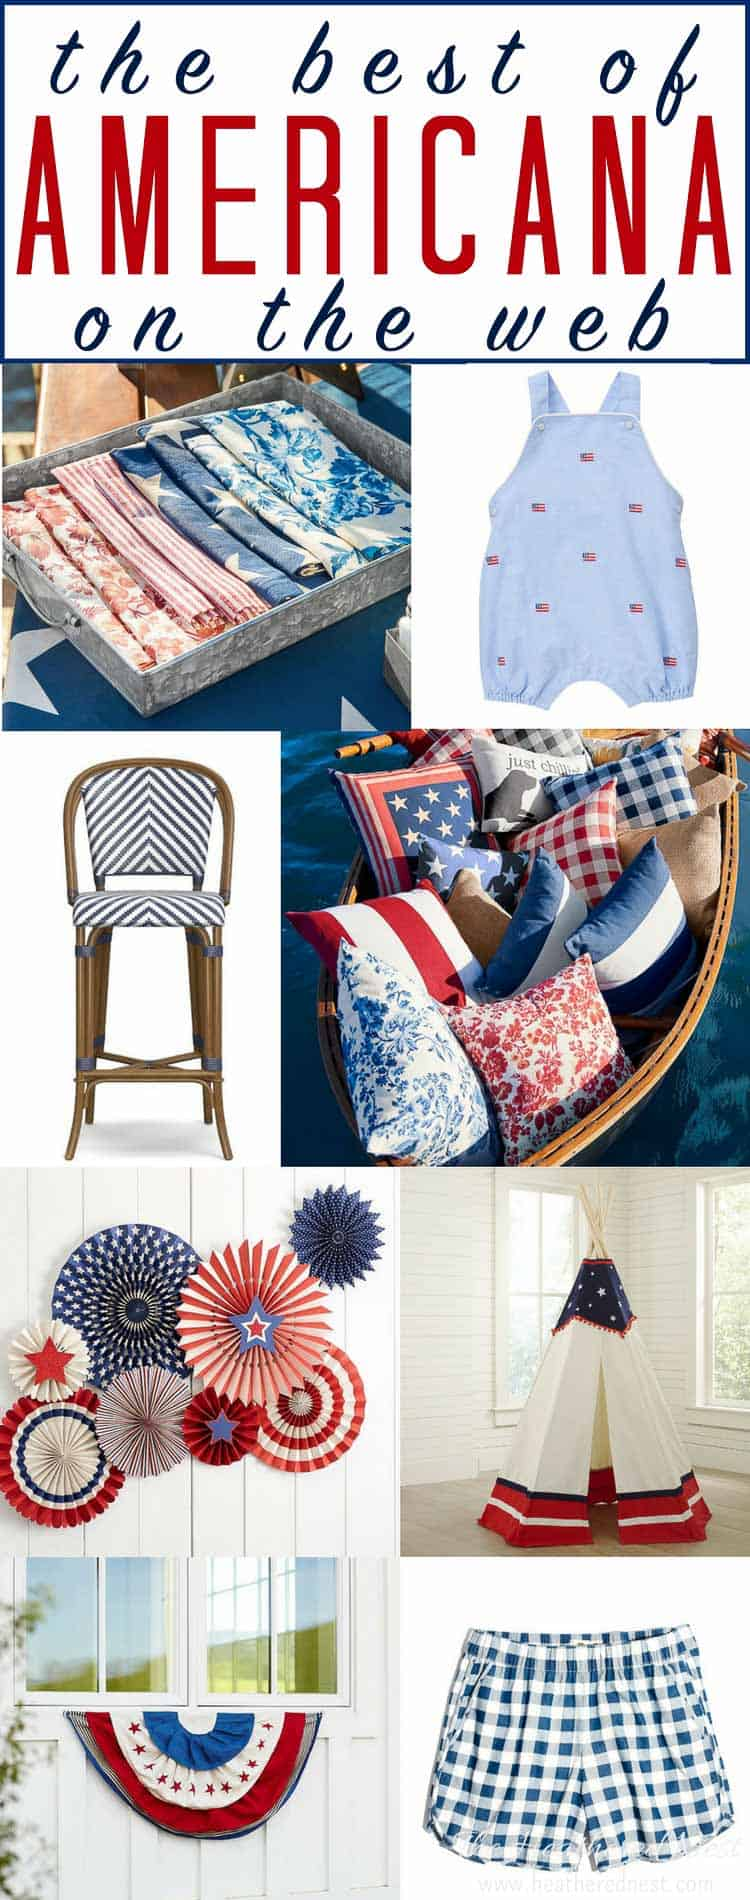 Oh say, can you see all the red, white and blue? A classically popular color combo. Here's the BEST patriotic decor and patriotic clothing on the internet!